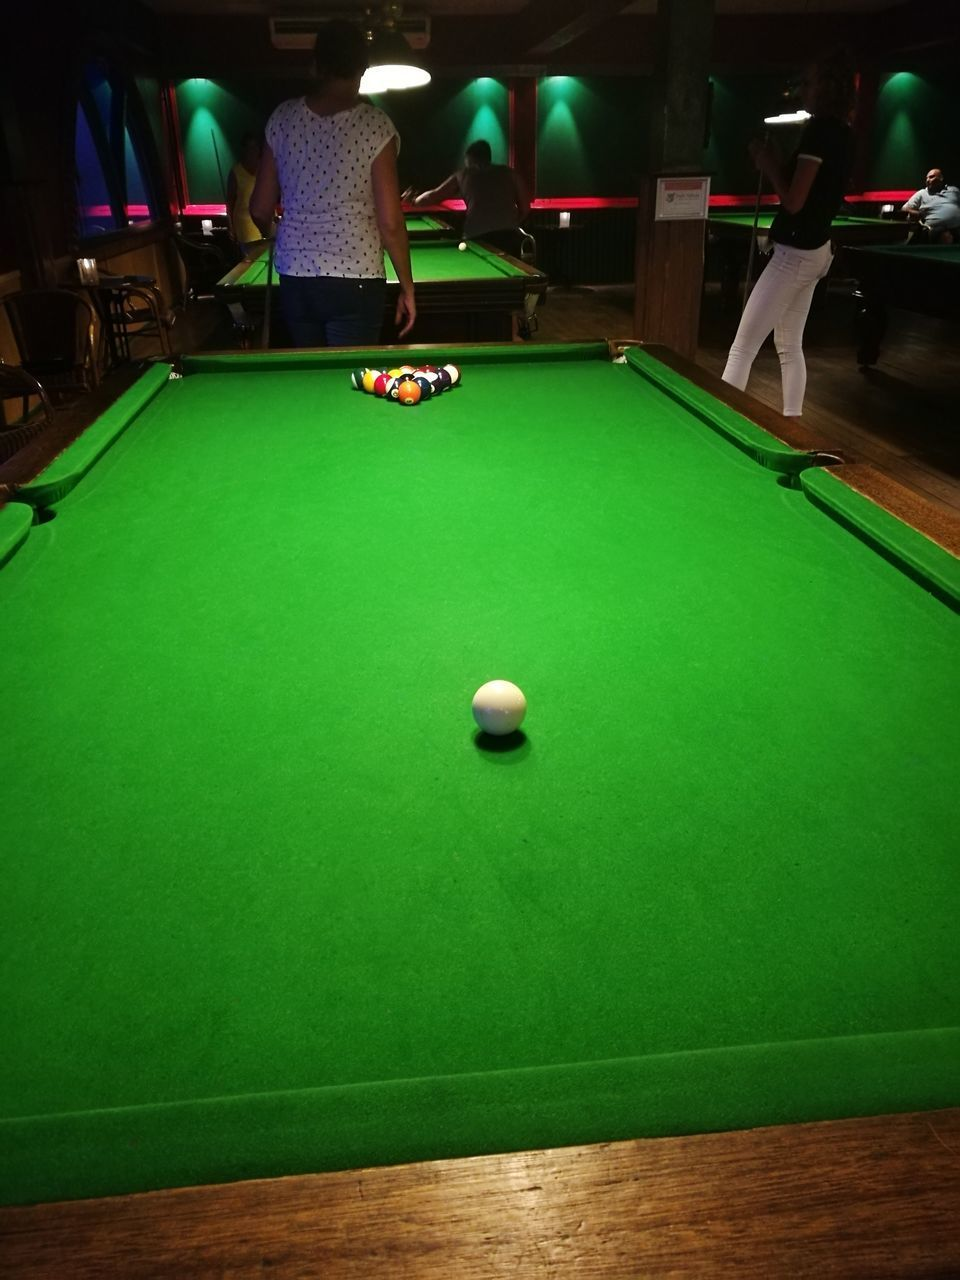 pool table, pool ball, pool - cue sport, indoors, snooker, sport, pool cue, green color, table, ball, leisure games, leisure activity, cue ball, playing, real people, competition, snooker and pool, one person, snooker ball, pool hall, day, adult, people